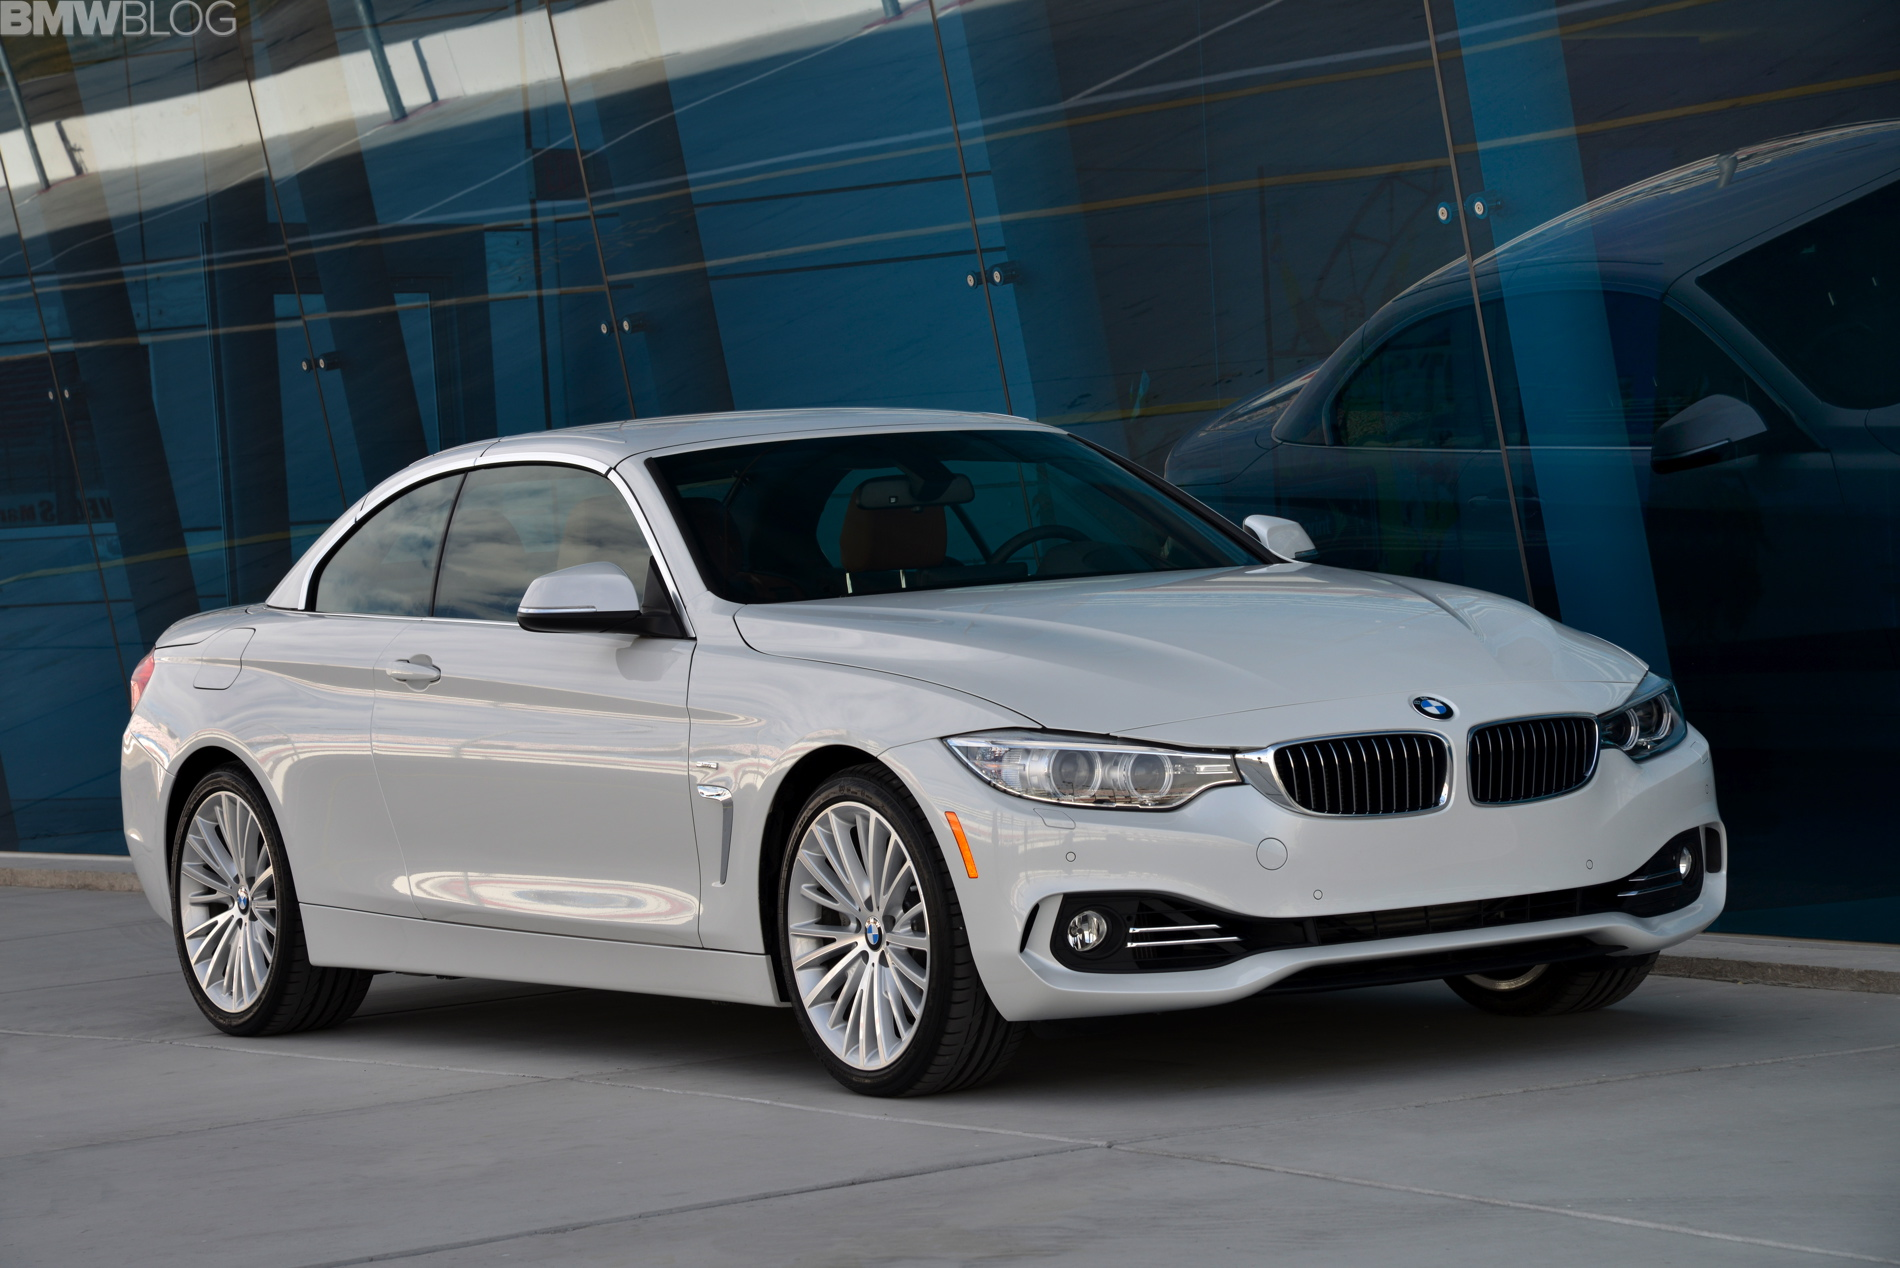 Let S Take A Look At What Lies Ahead For The Bmw Brand